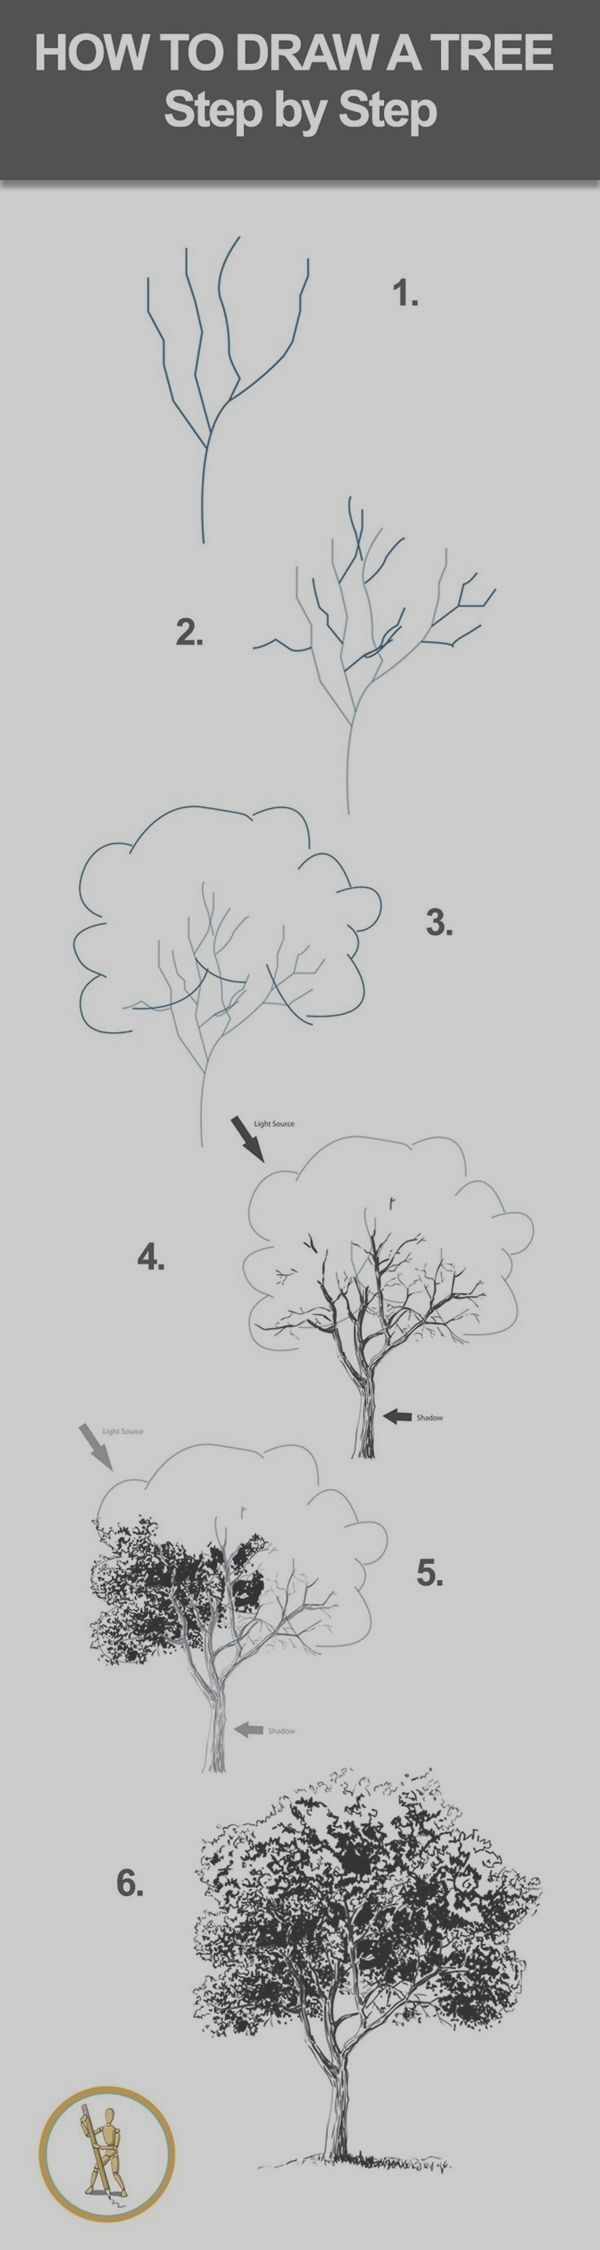 40 Easy Step By Step Art Drawings To Practice - Bored Art